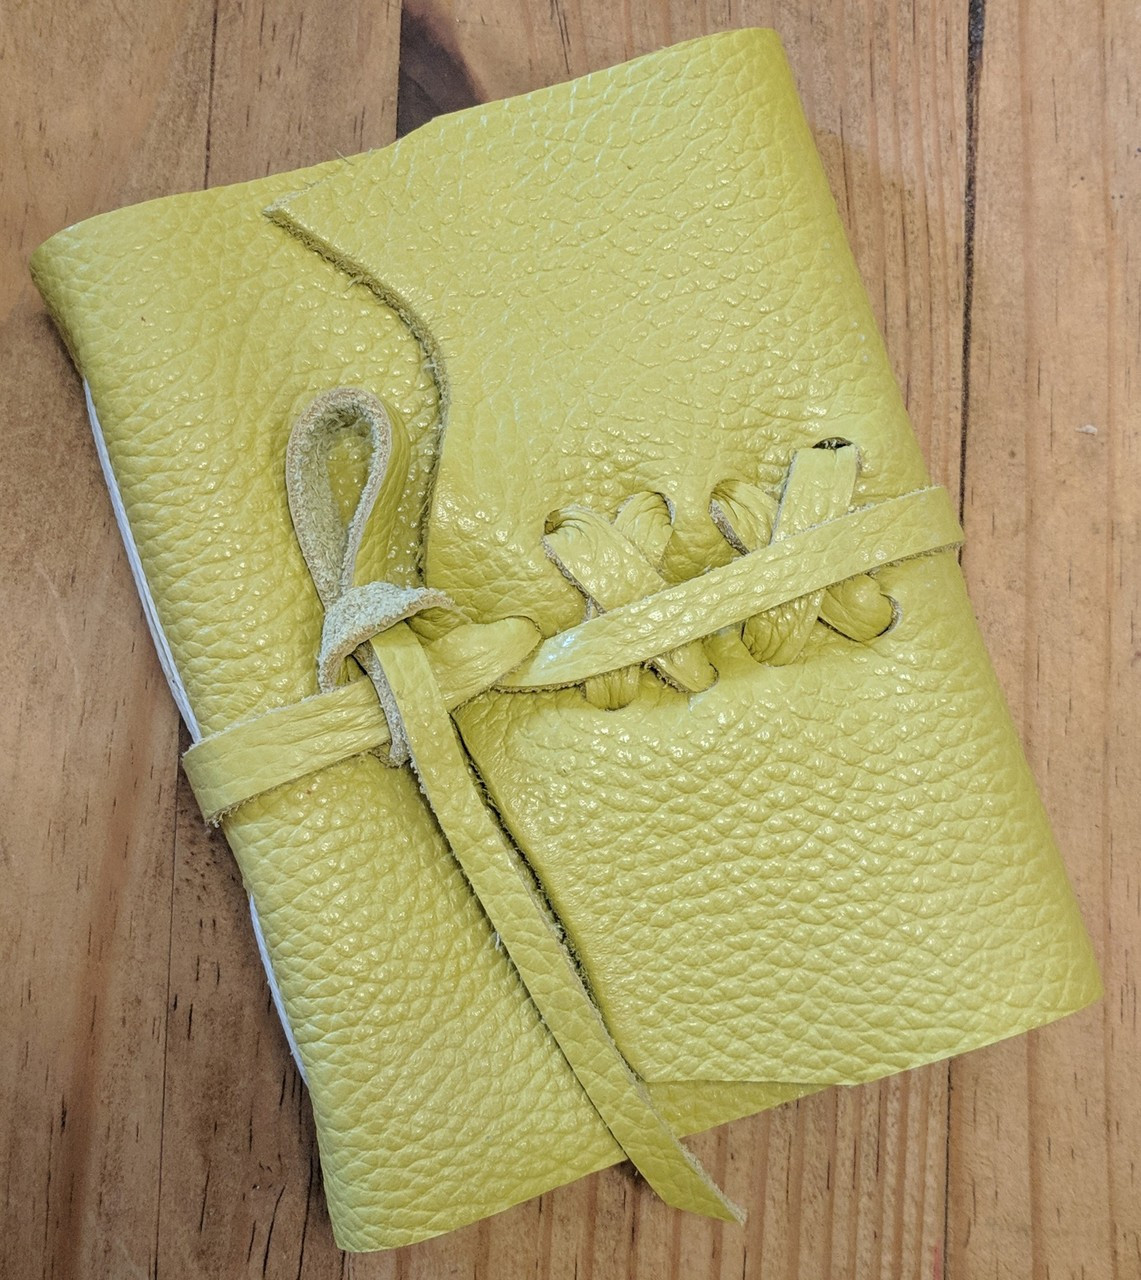 Spellbinding Journals - small yellow